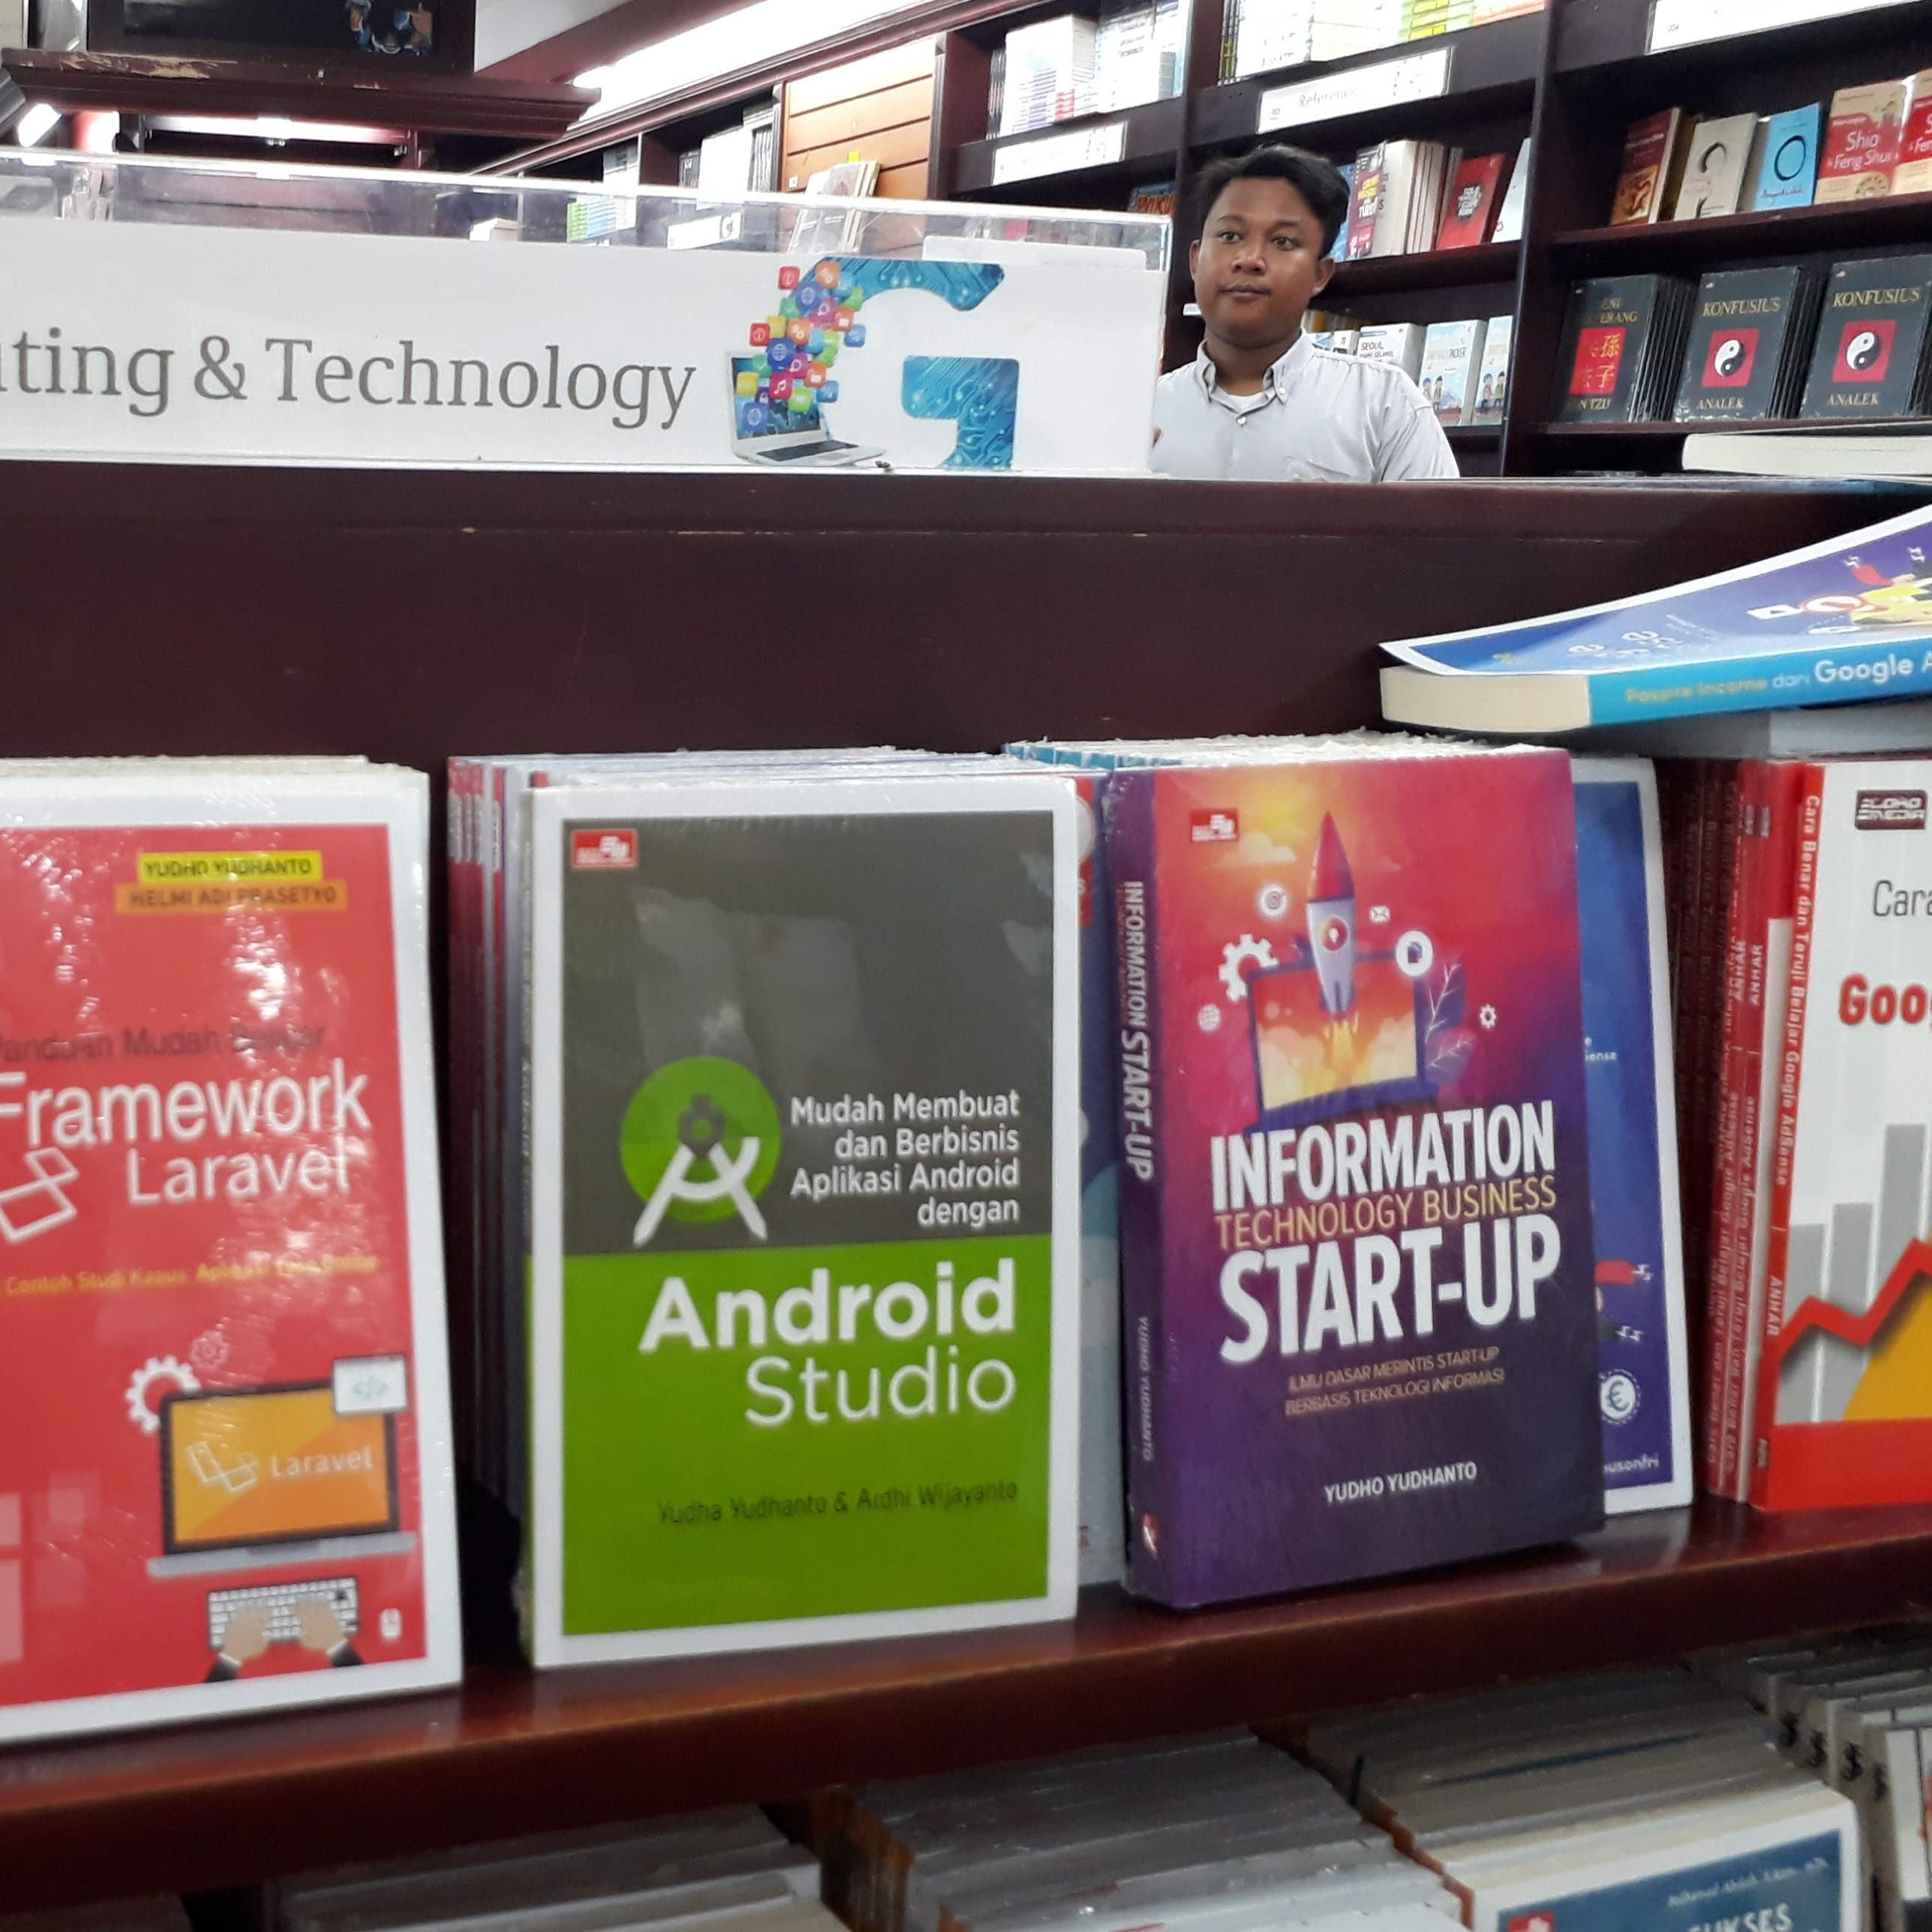 buku INFORMATION TECHNOLOGY BUSINESS START-UP